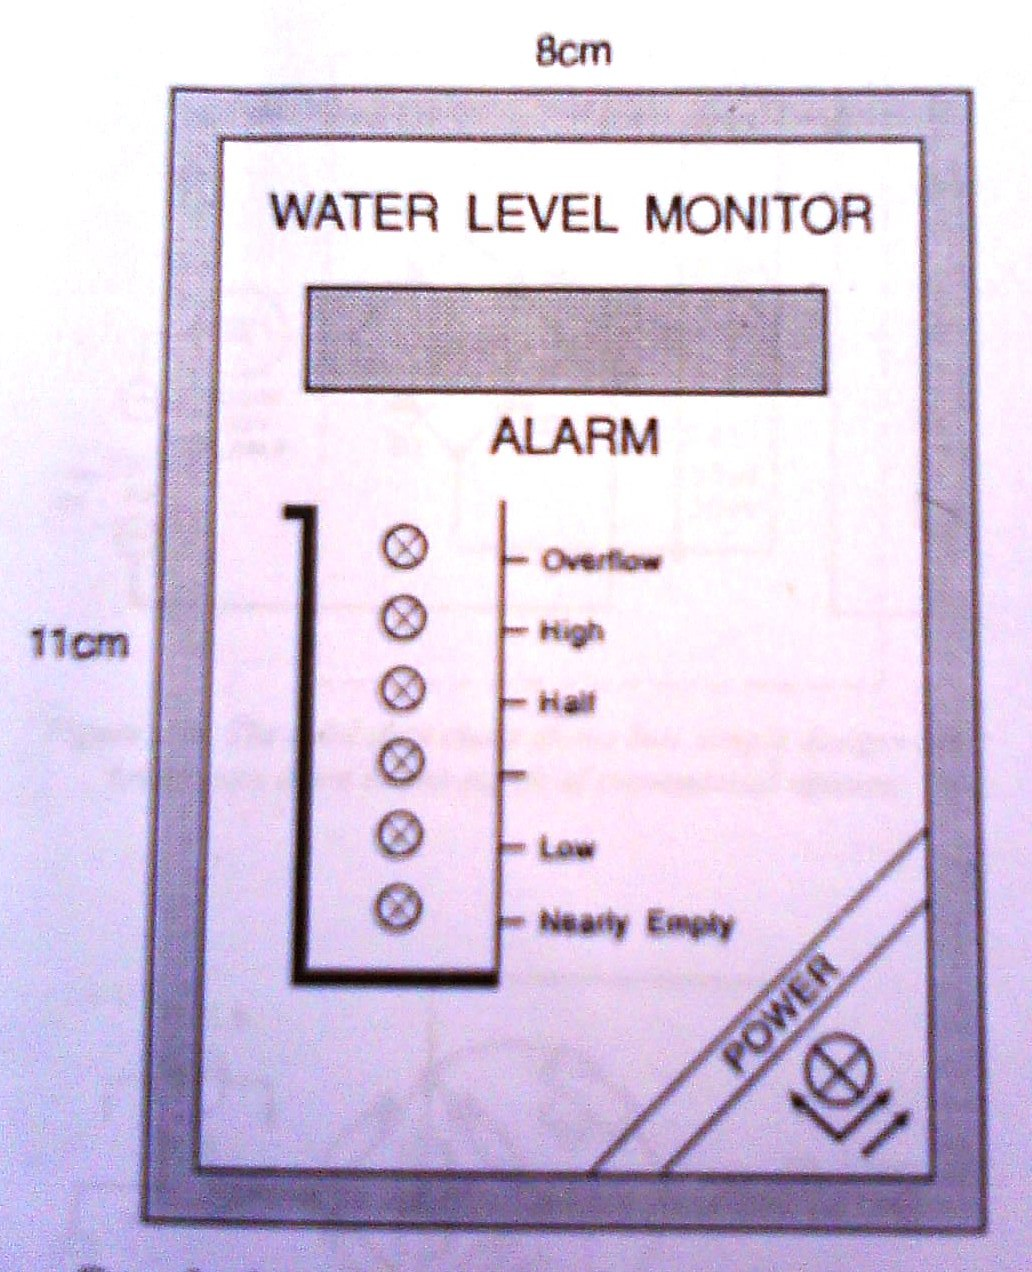 Huzoonline August 2010 Figure 1 Tda2050 Typical Hifi Amplifier Schematic This Panel May Either Be Photo Copied On To Film Or Used Directlythe Sensors Can Fixed One Side Of The Water Whose Level Is Measured B